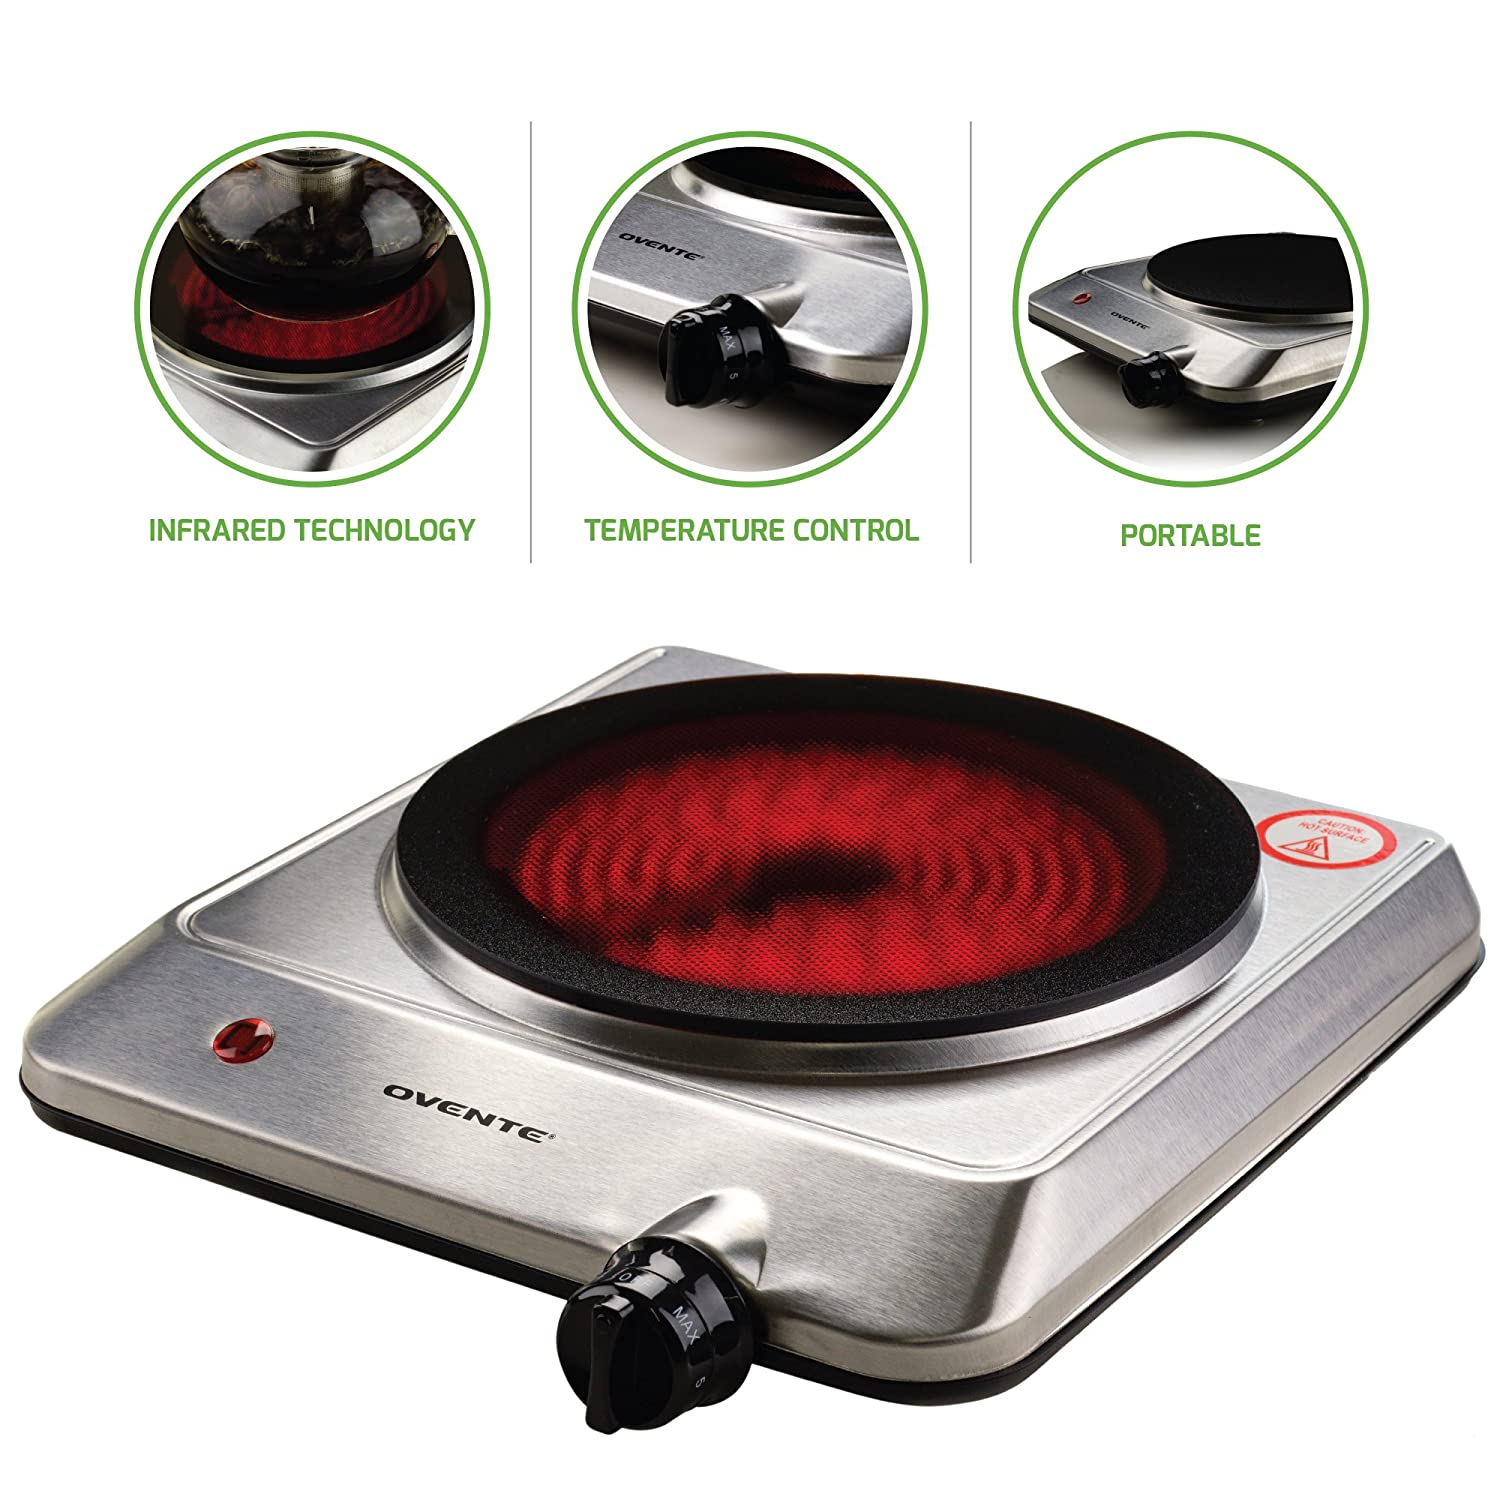 Ovente Countertop Burner, Infrared Ceramic Glass Single Plate Cooktop, Indoor and Outdoor Portable Stove, 1000 Watts (BGI101S)